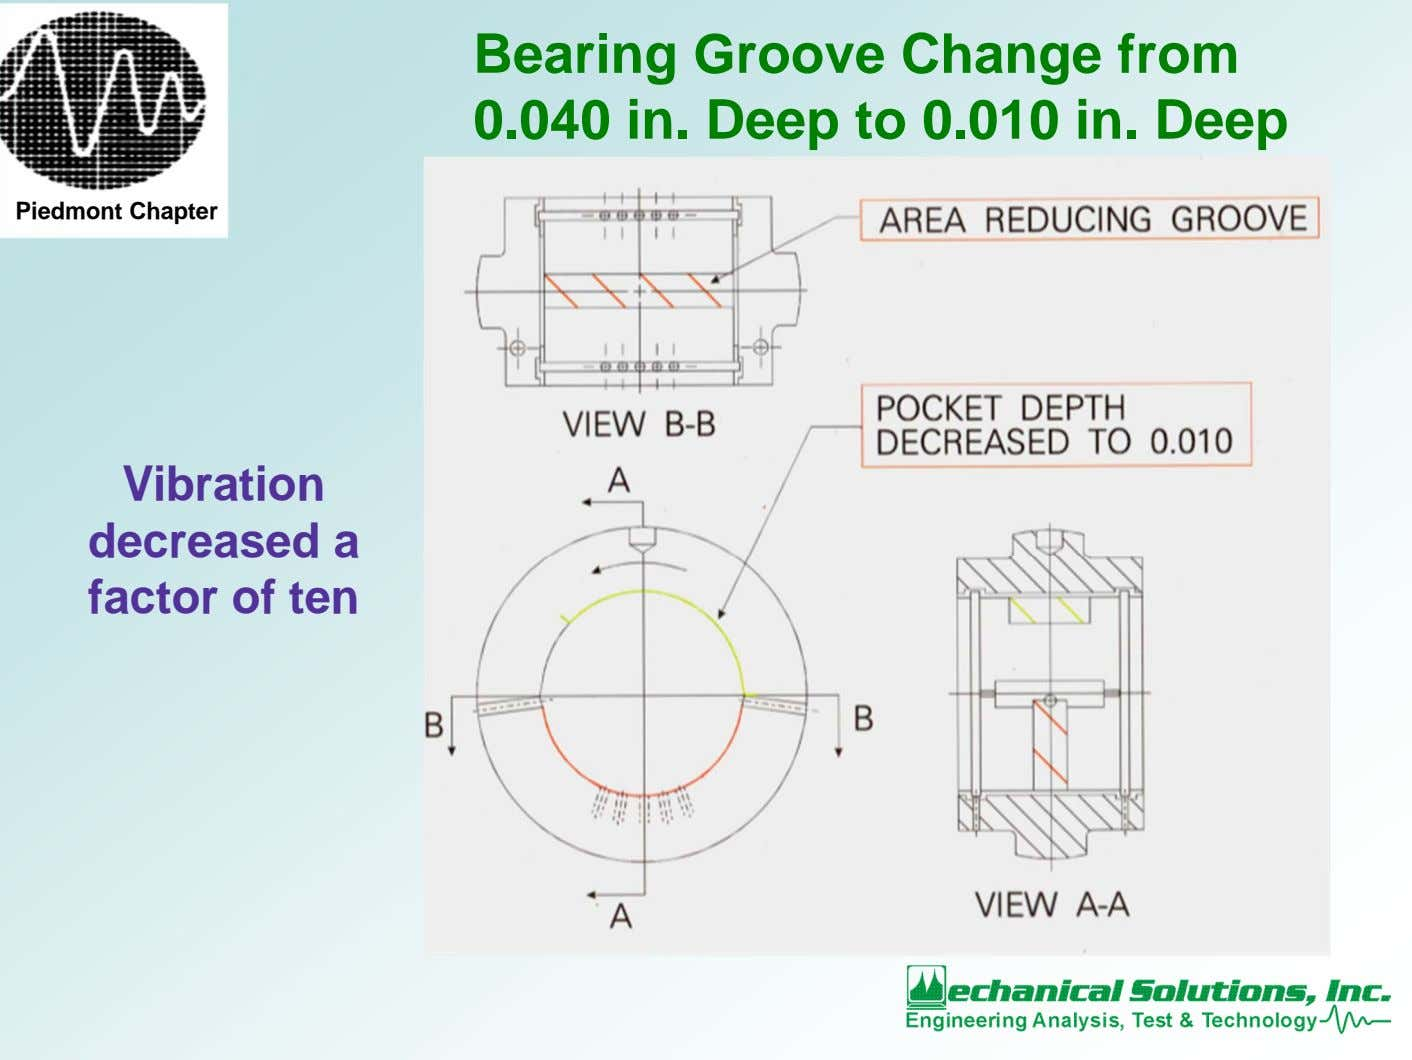 Bearing Groove Change from 0.040 in. Deep to 0.010 in. Deep Piedmont Chapter Vibration decreased